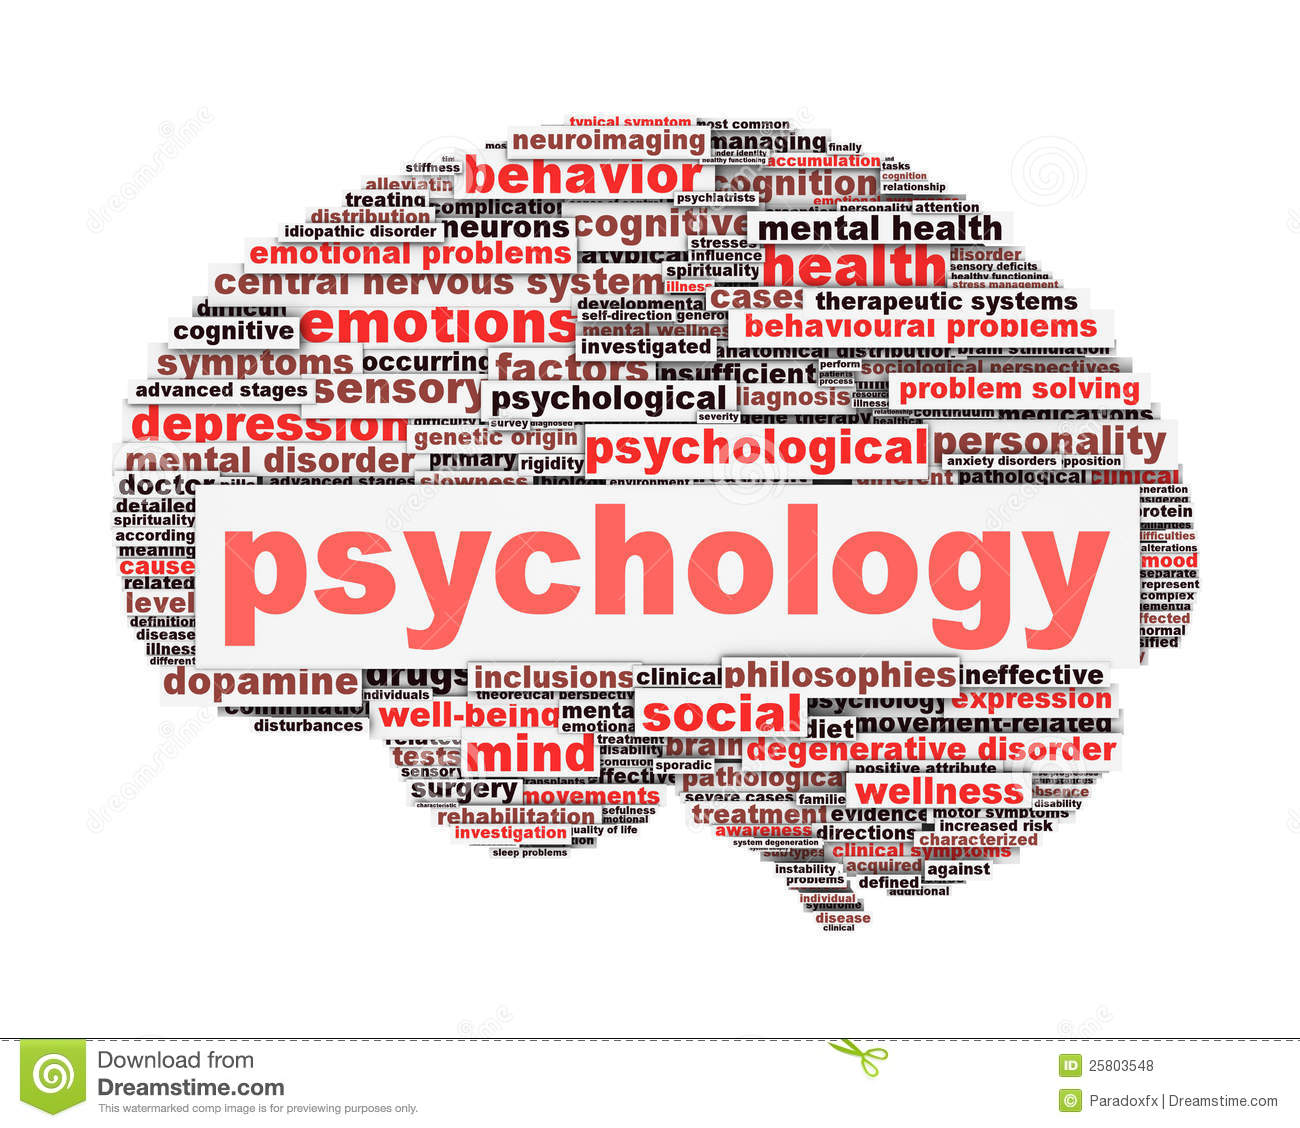 691 Psychology free clipart.